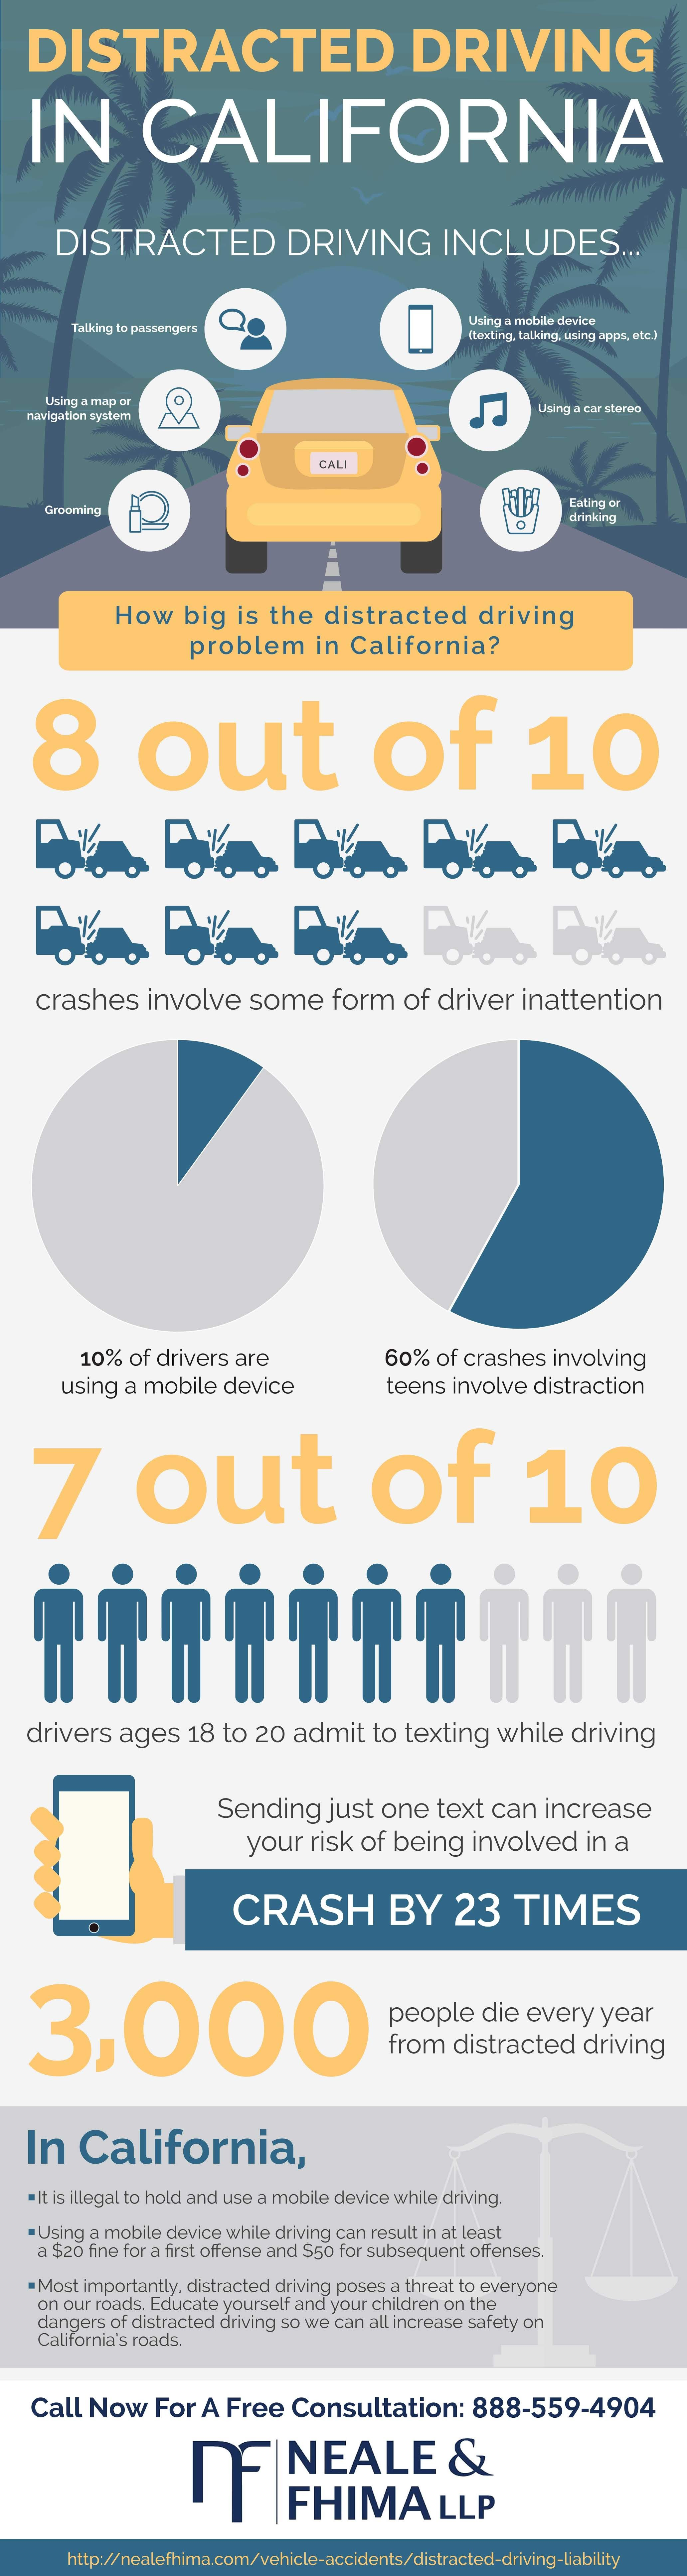 Distracted Driving In California #infographic